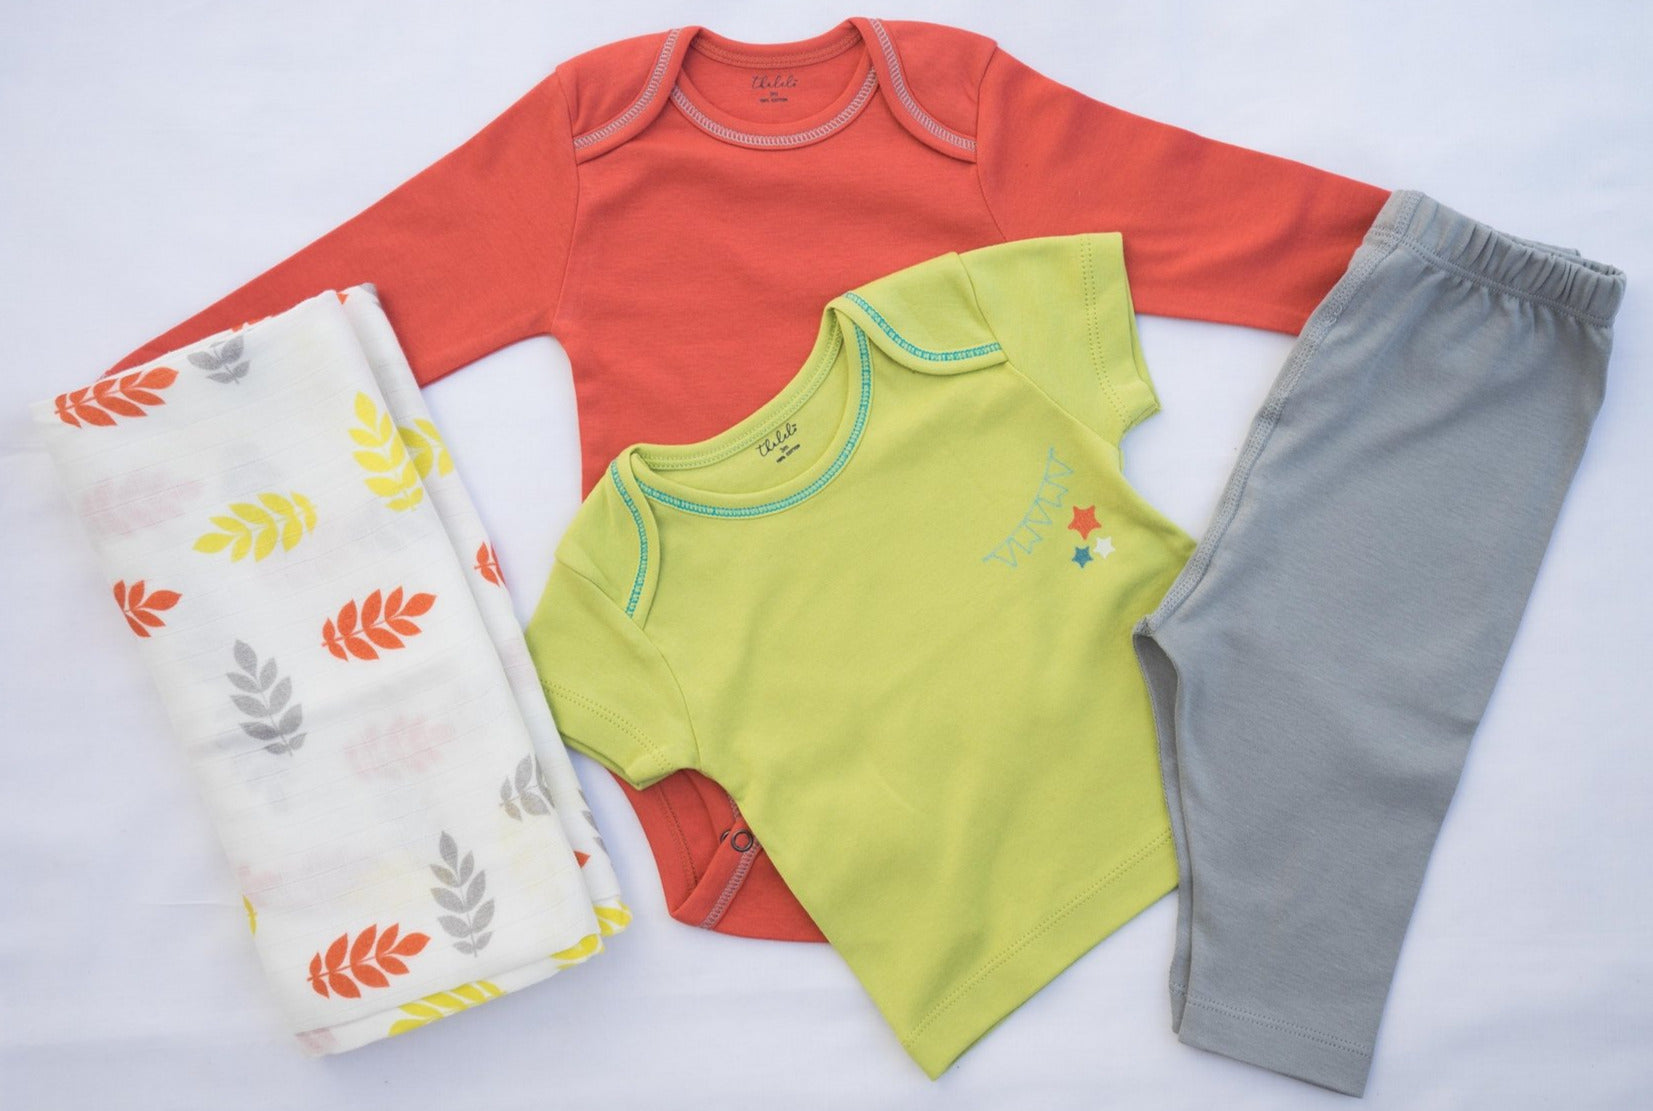 Thālelo Baby Essentials Set with Medium Leaves Swaddle